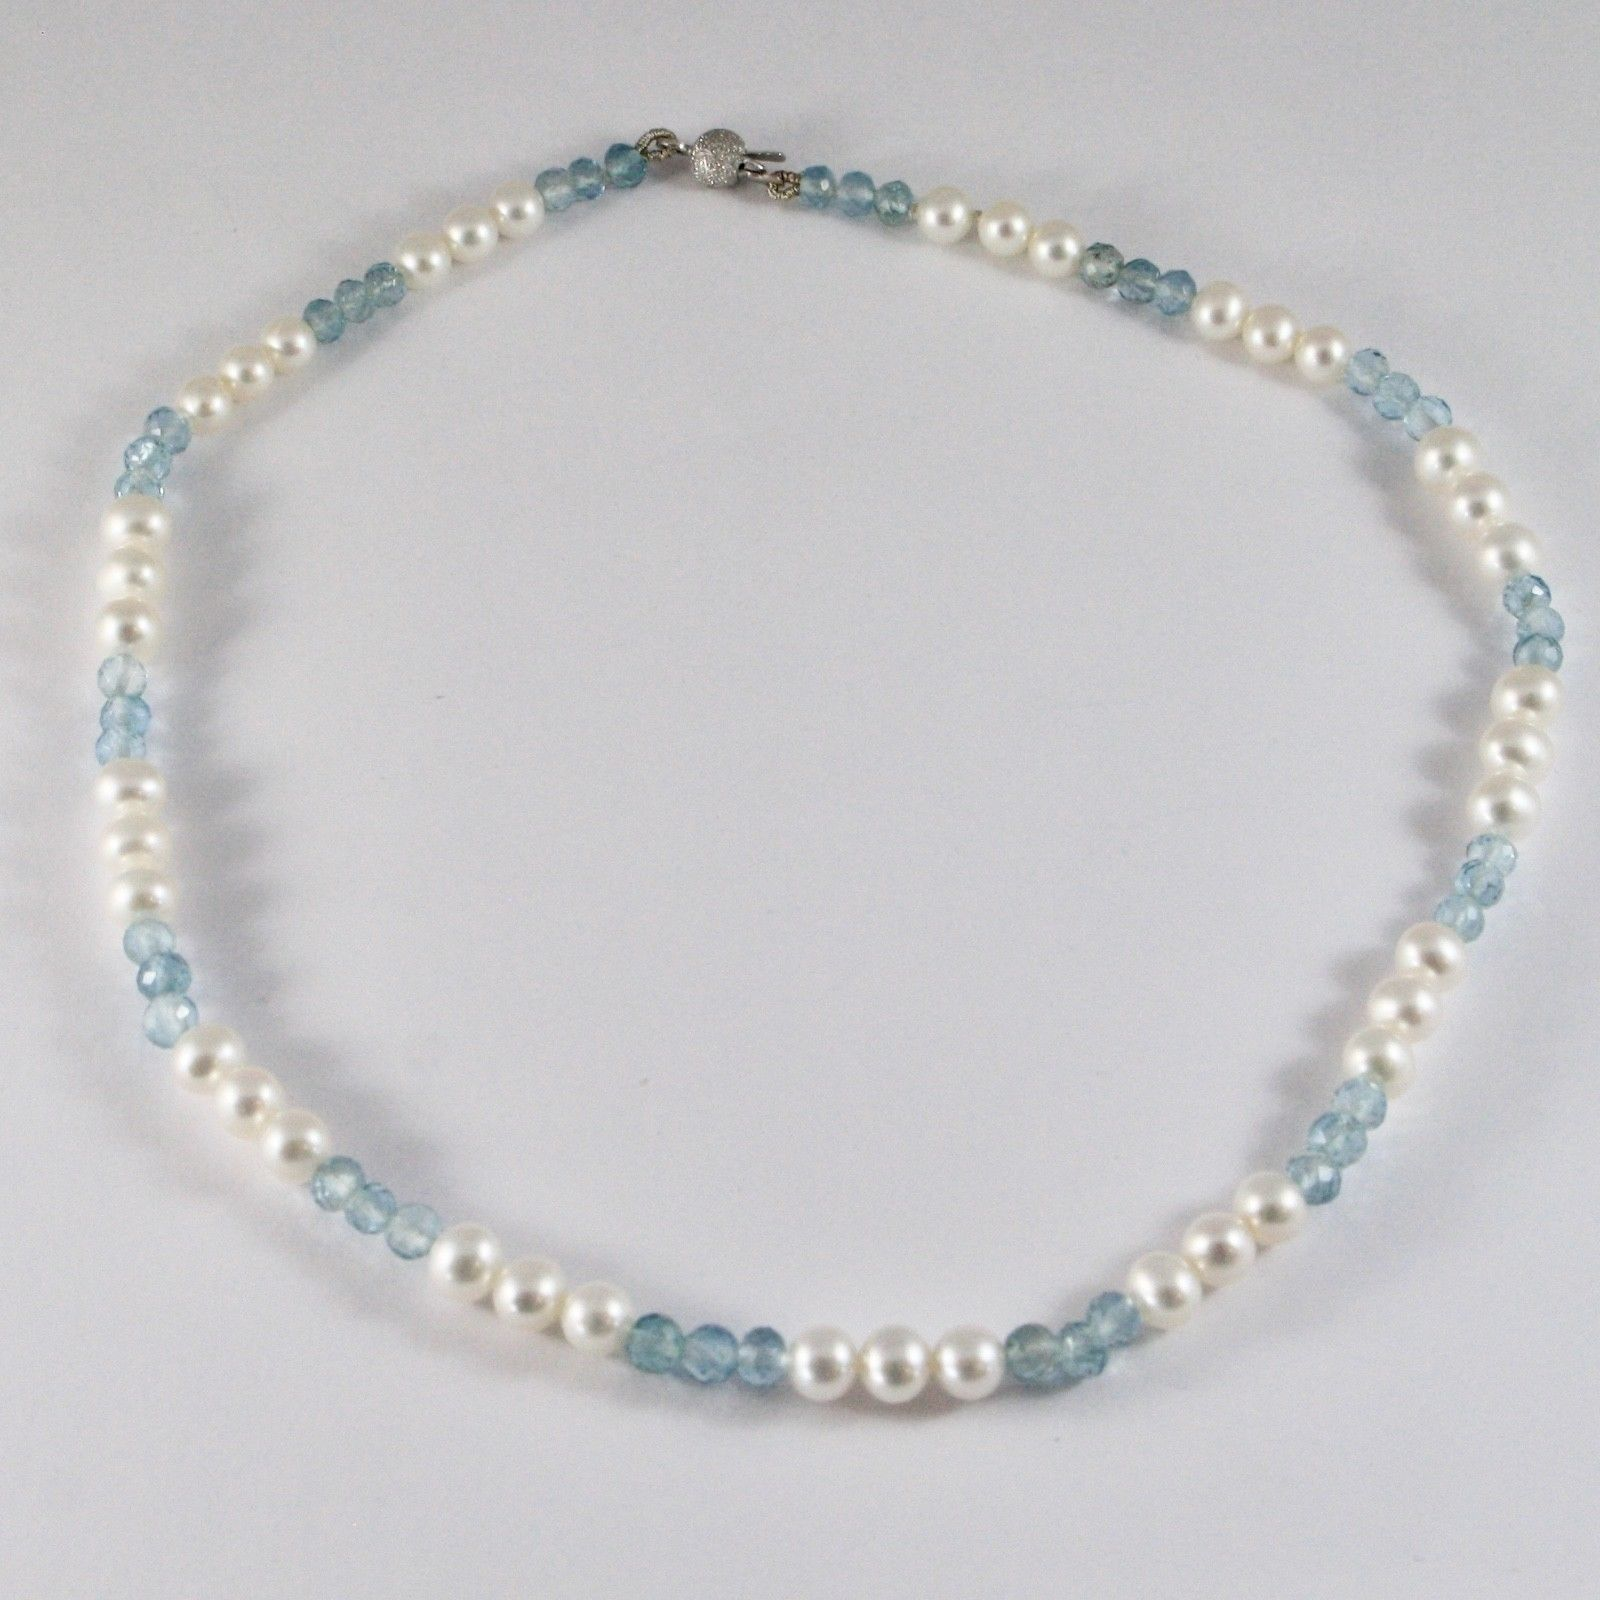 NECKLACE WHITE GOLD 18KT WITH PEARLS WHITE AND AQUAMARINE NATURAL FACETED